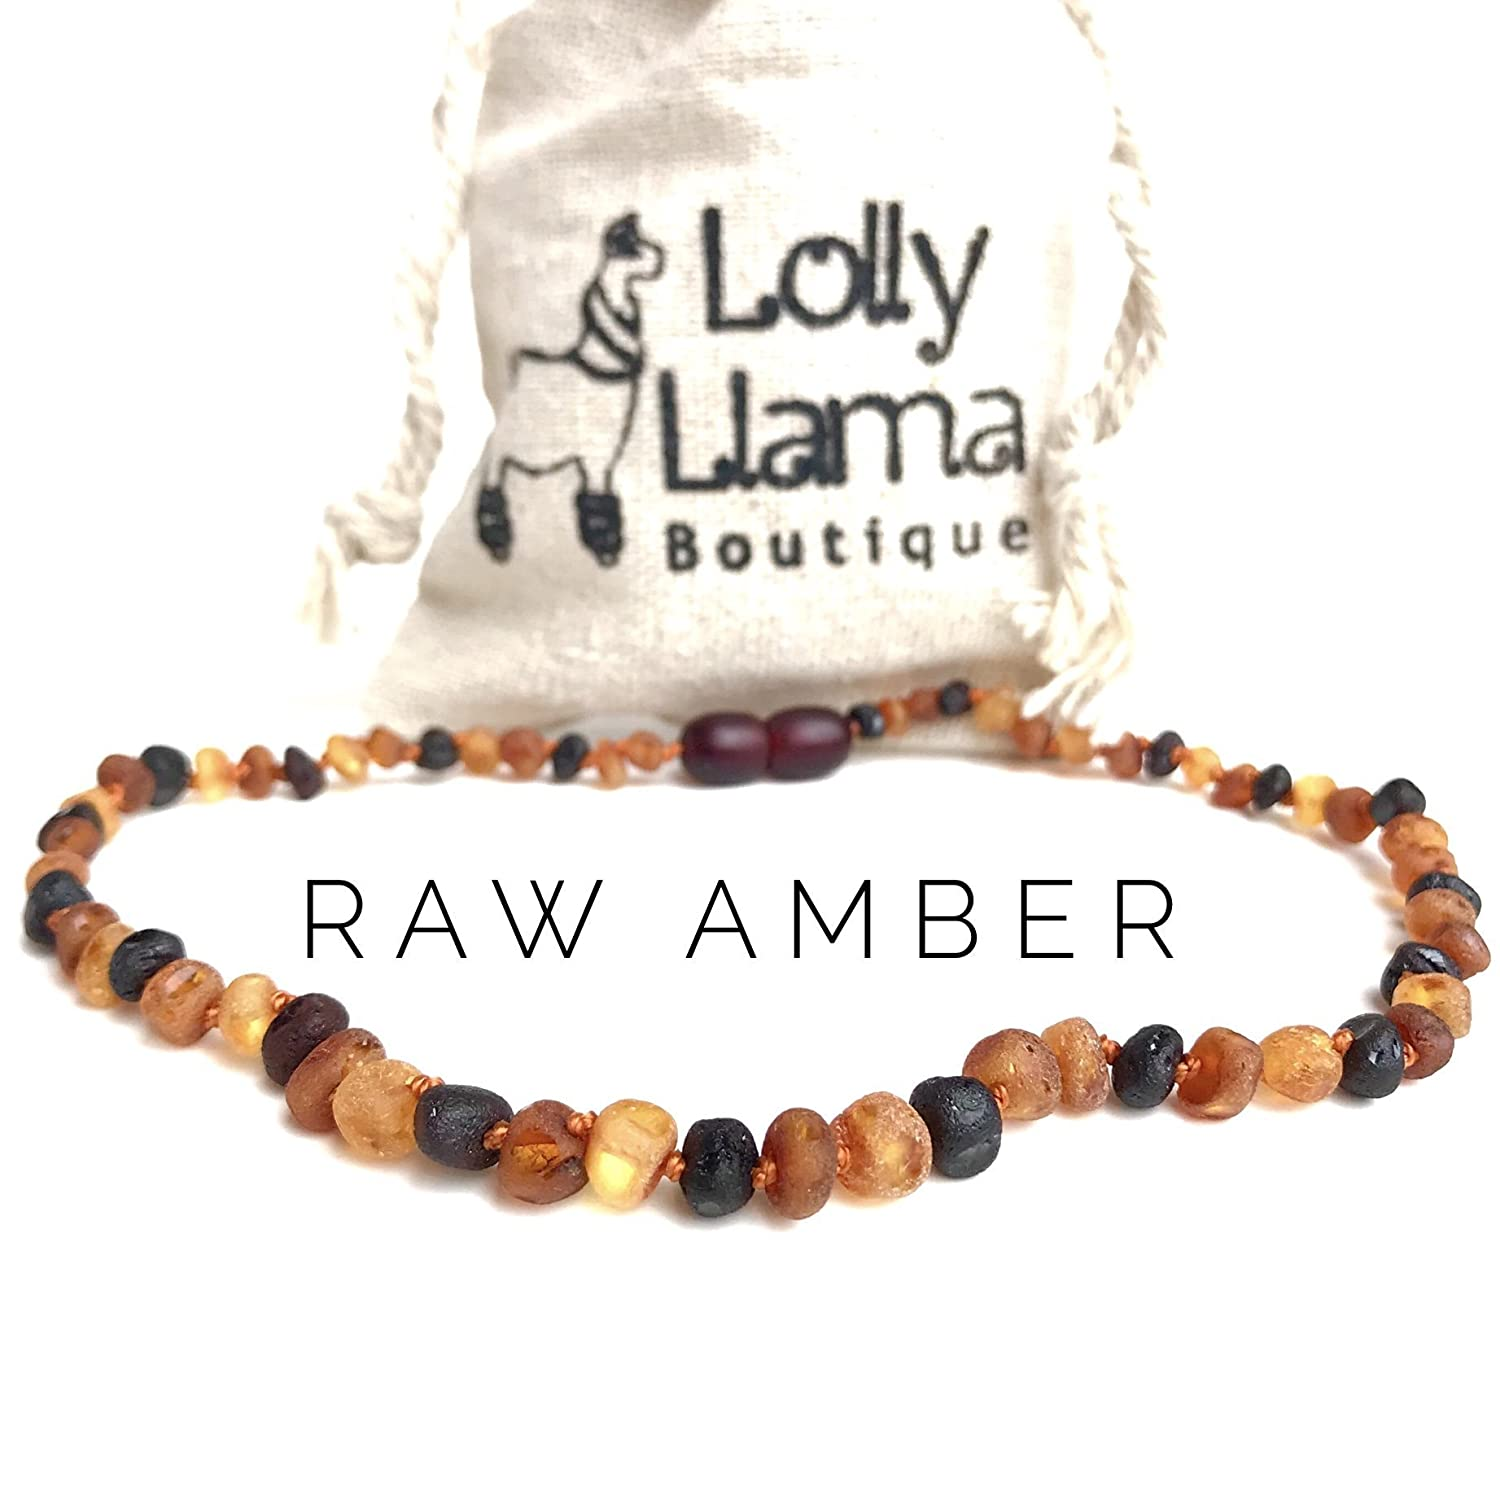 Raw Amber Teething Necklace for Babies (Unisex) Teething Pain Relief - Certified Genuine Baby Baltic Amber Necklace- Tri-Color Lolly Llama